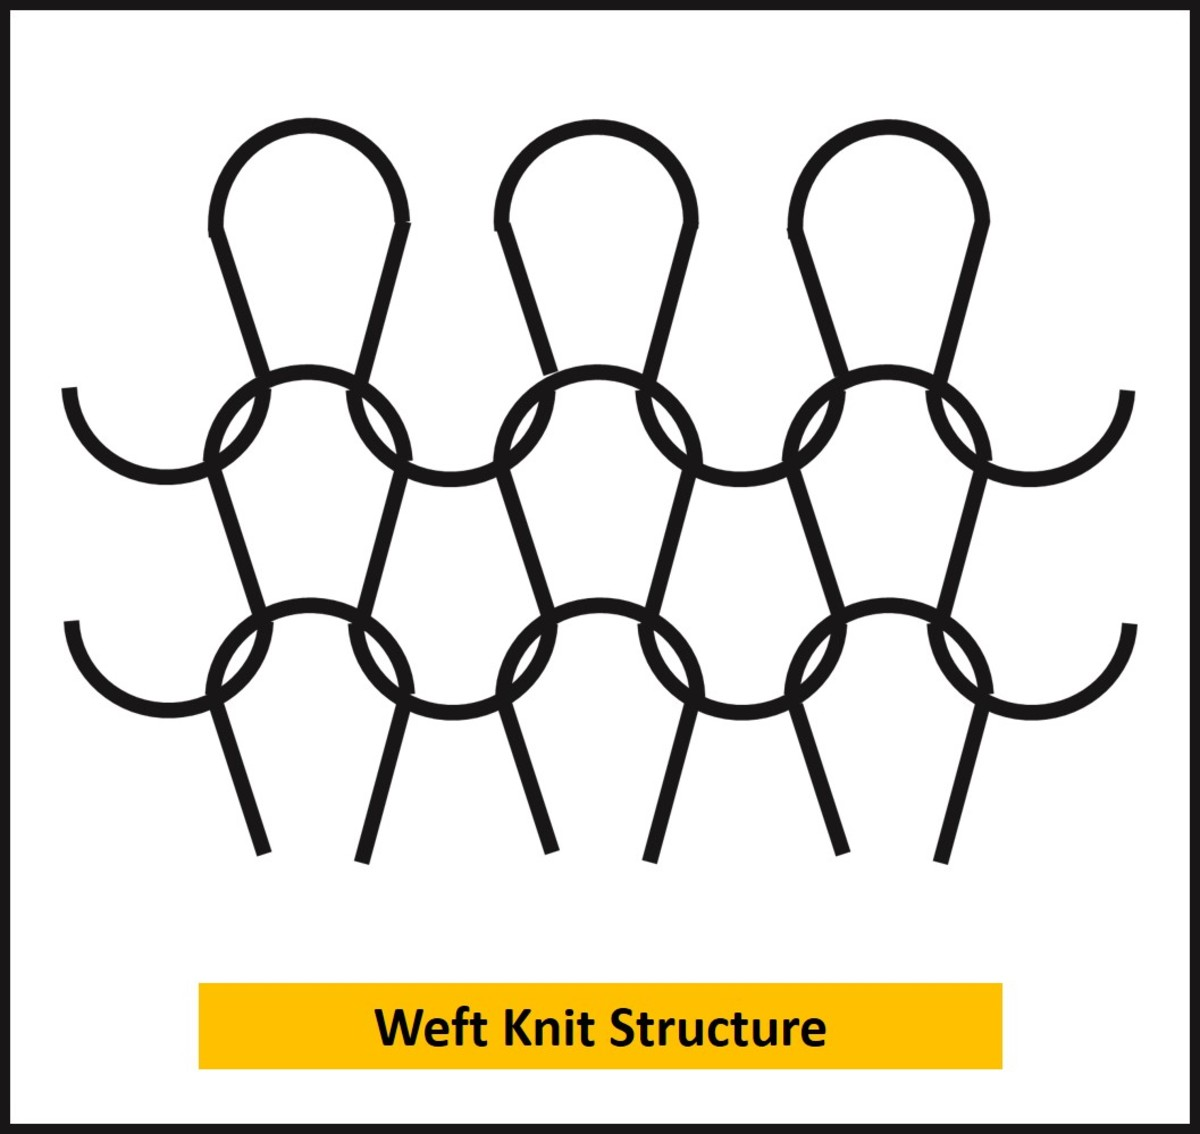 Weft Knit Fabric Structure